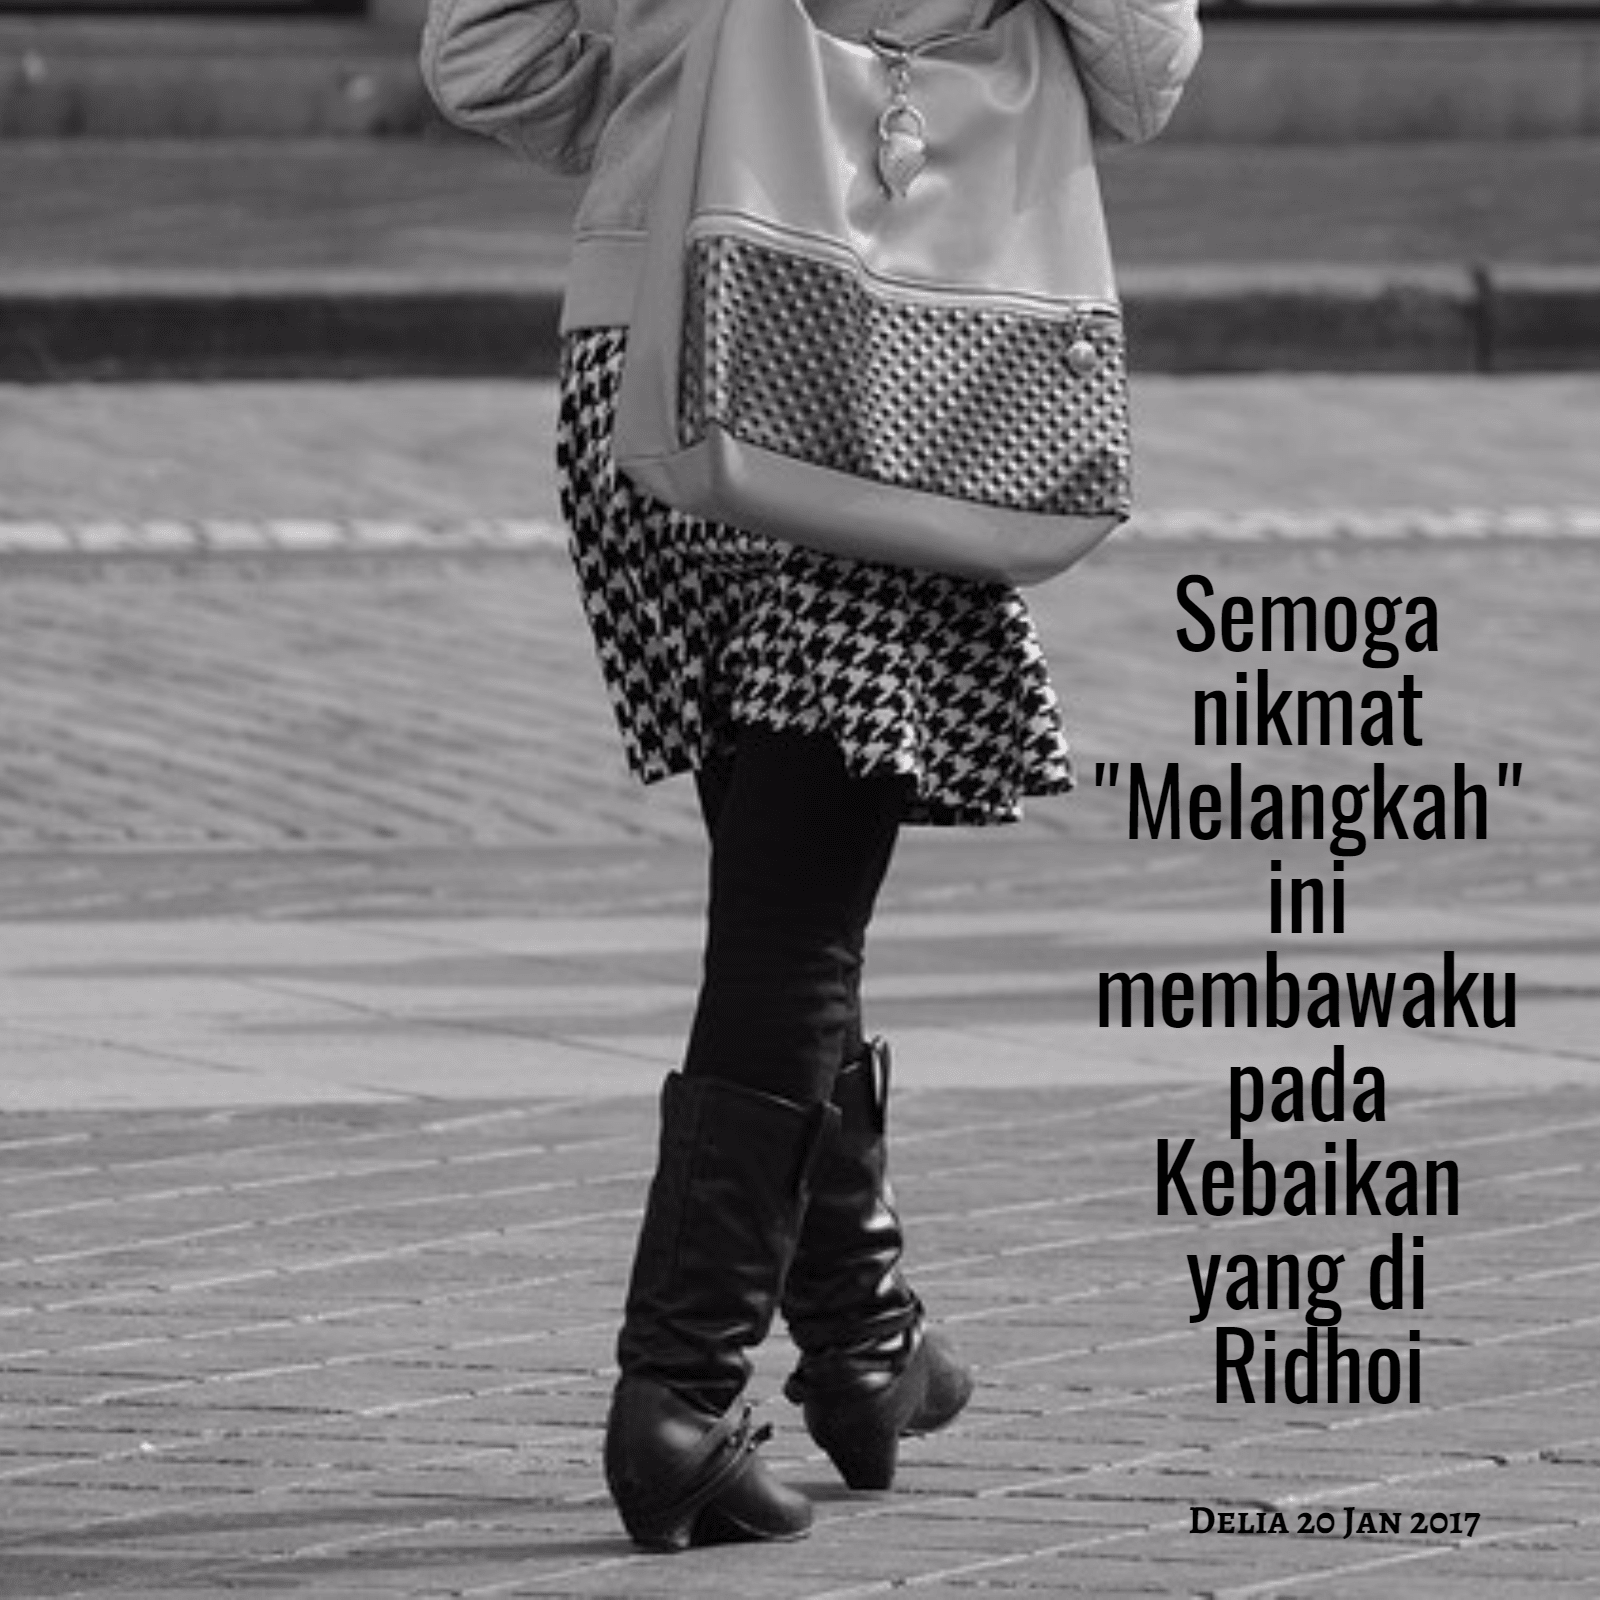 Black,                White,                Clothing,                And,                Footwear,                Poster,                Text,                Quote,                Simple,                 Free Image